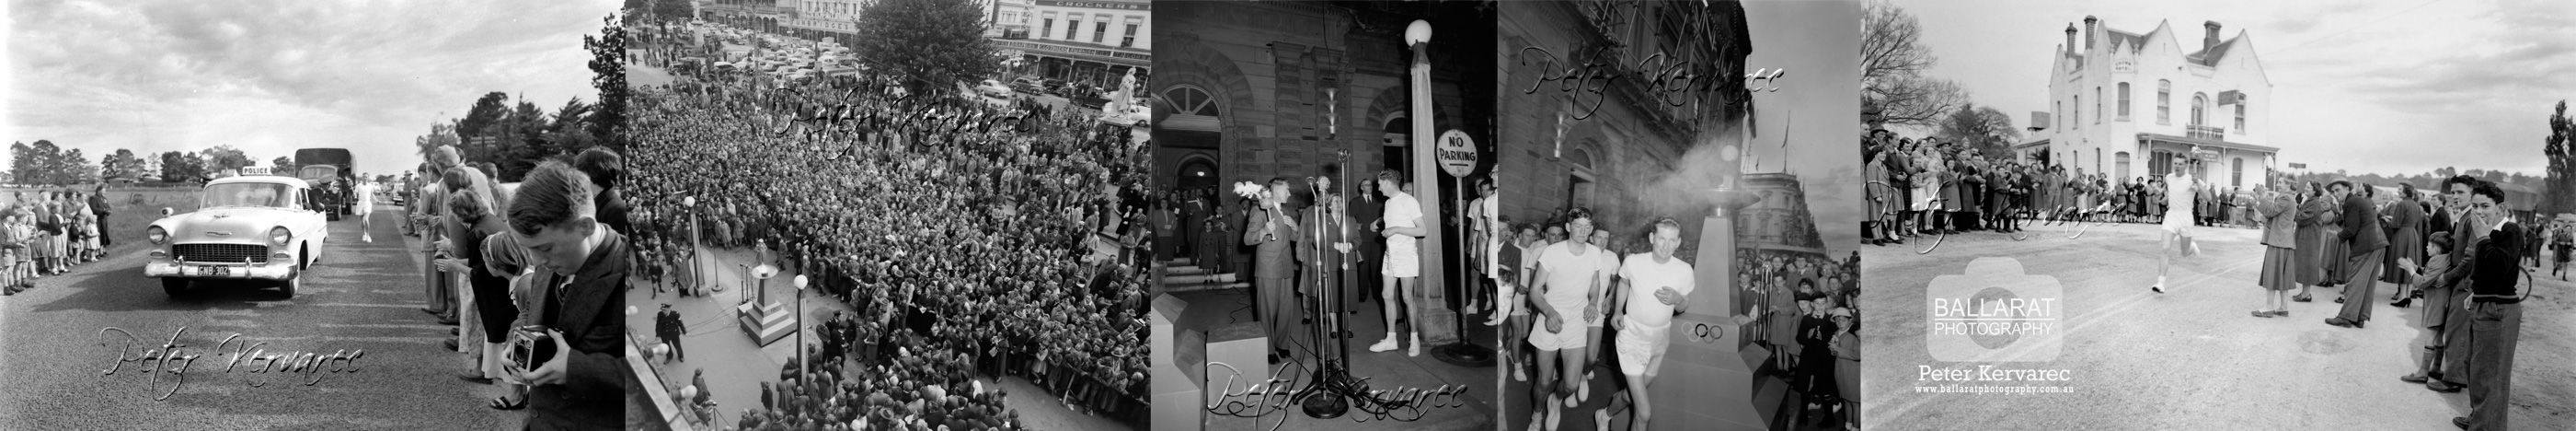 Ballarat Photography 1956 Olympic Torch Relay